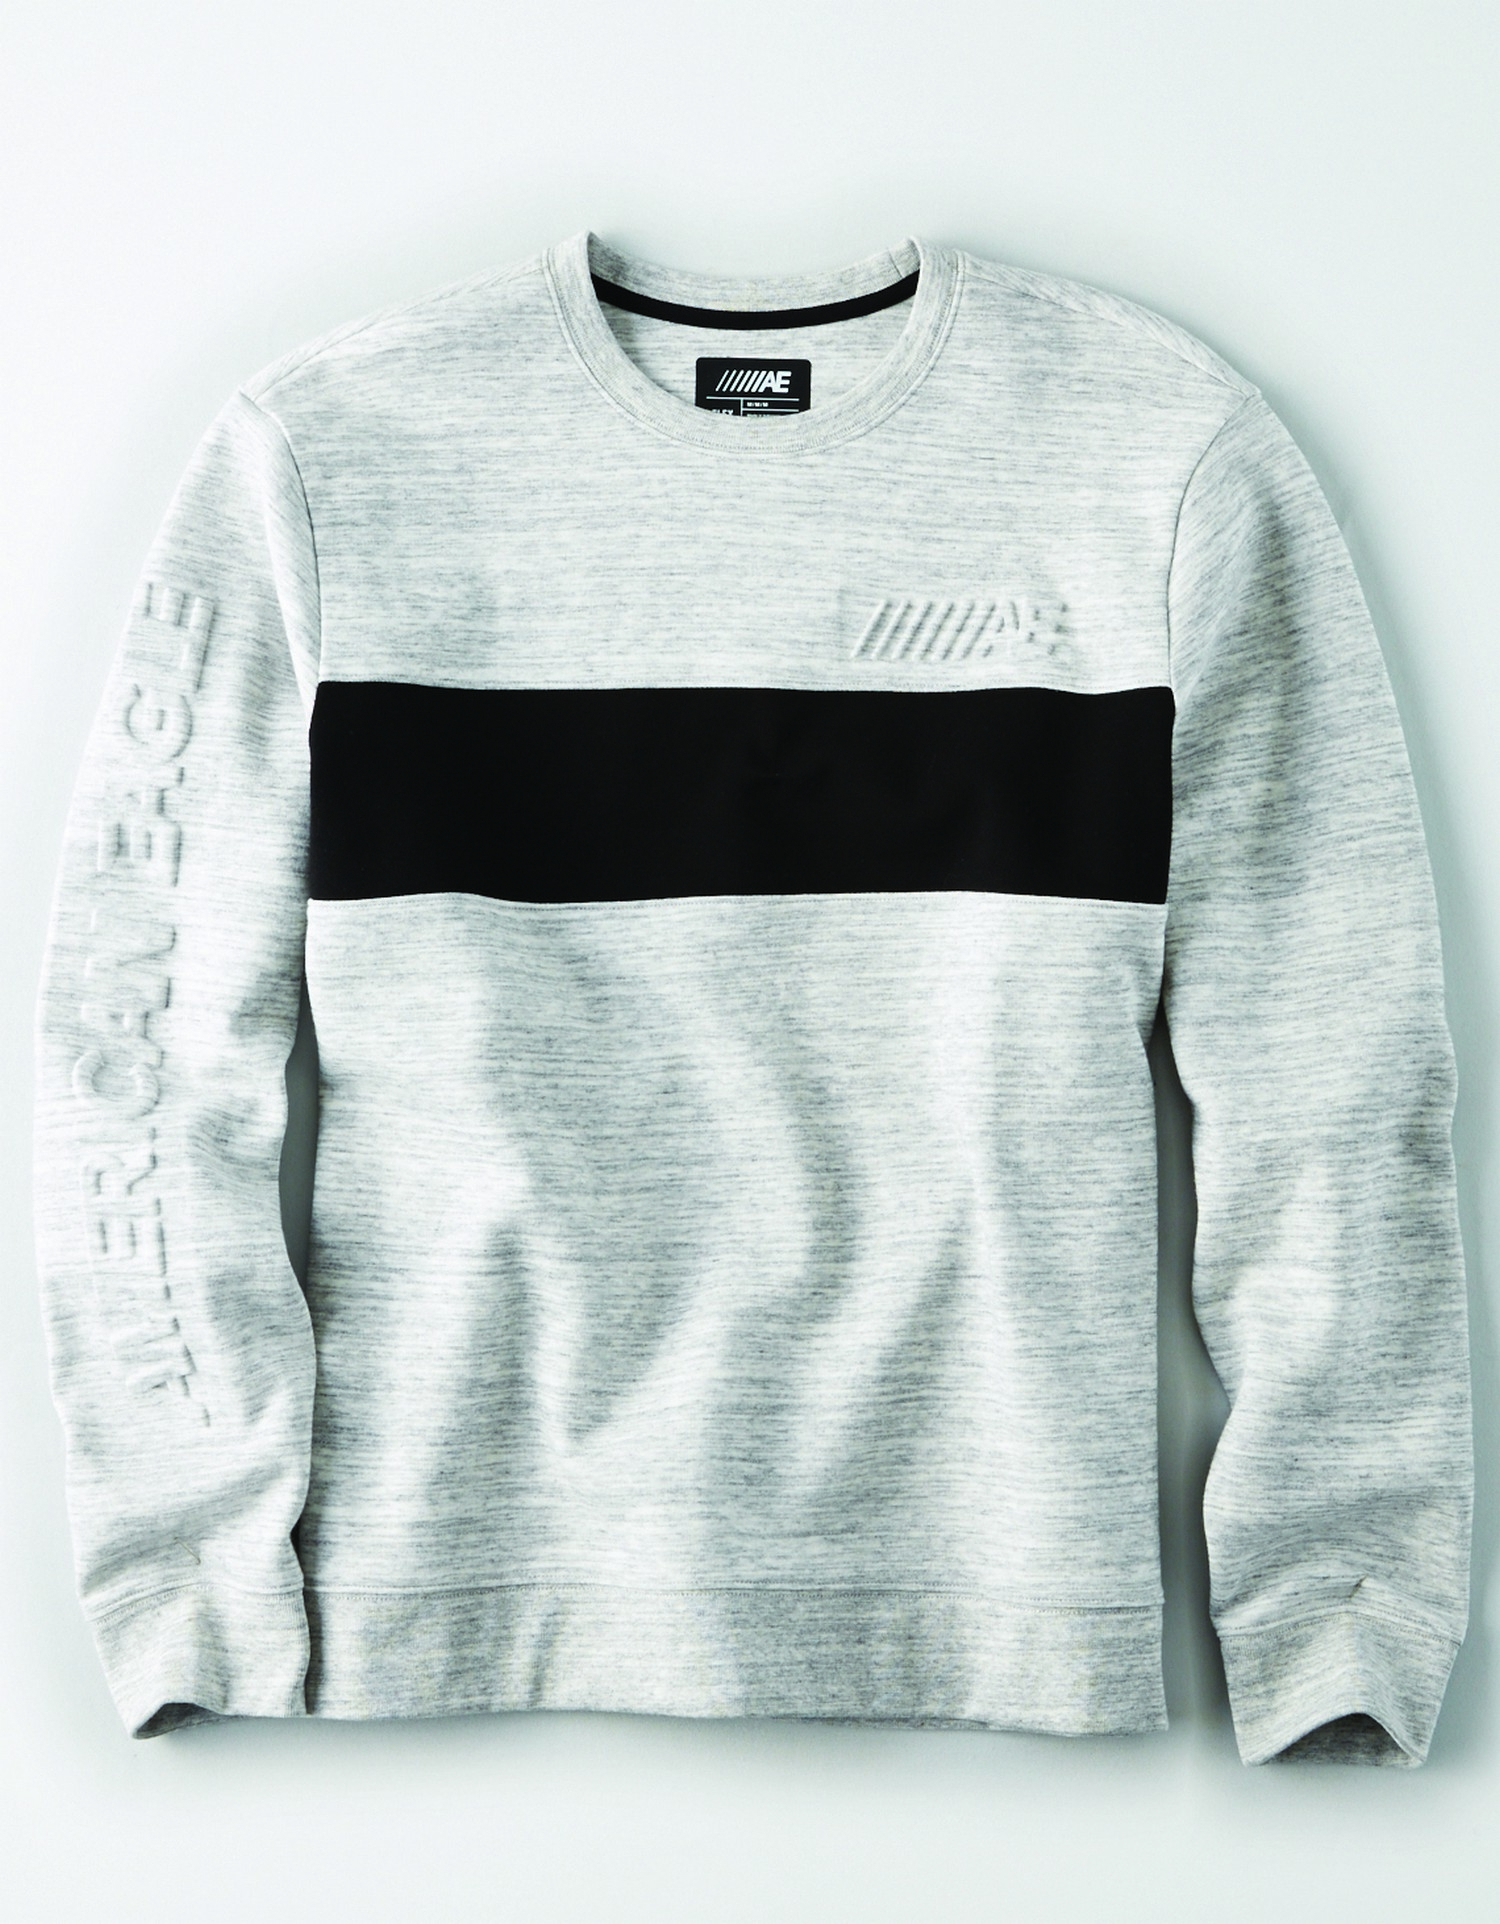 Ae INTL- M- Apparel-SWEATSHIRT-light white/heather grey crew neck with black colorblock stripe across the chest raised ////AE graphic on the left chest BG